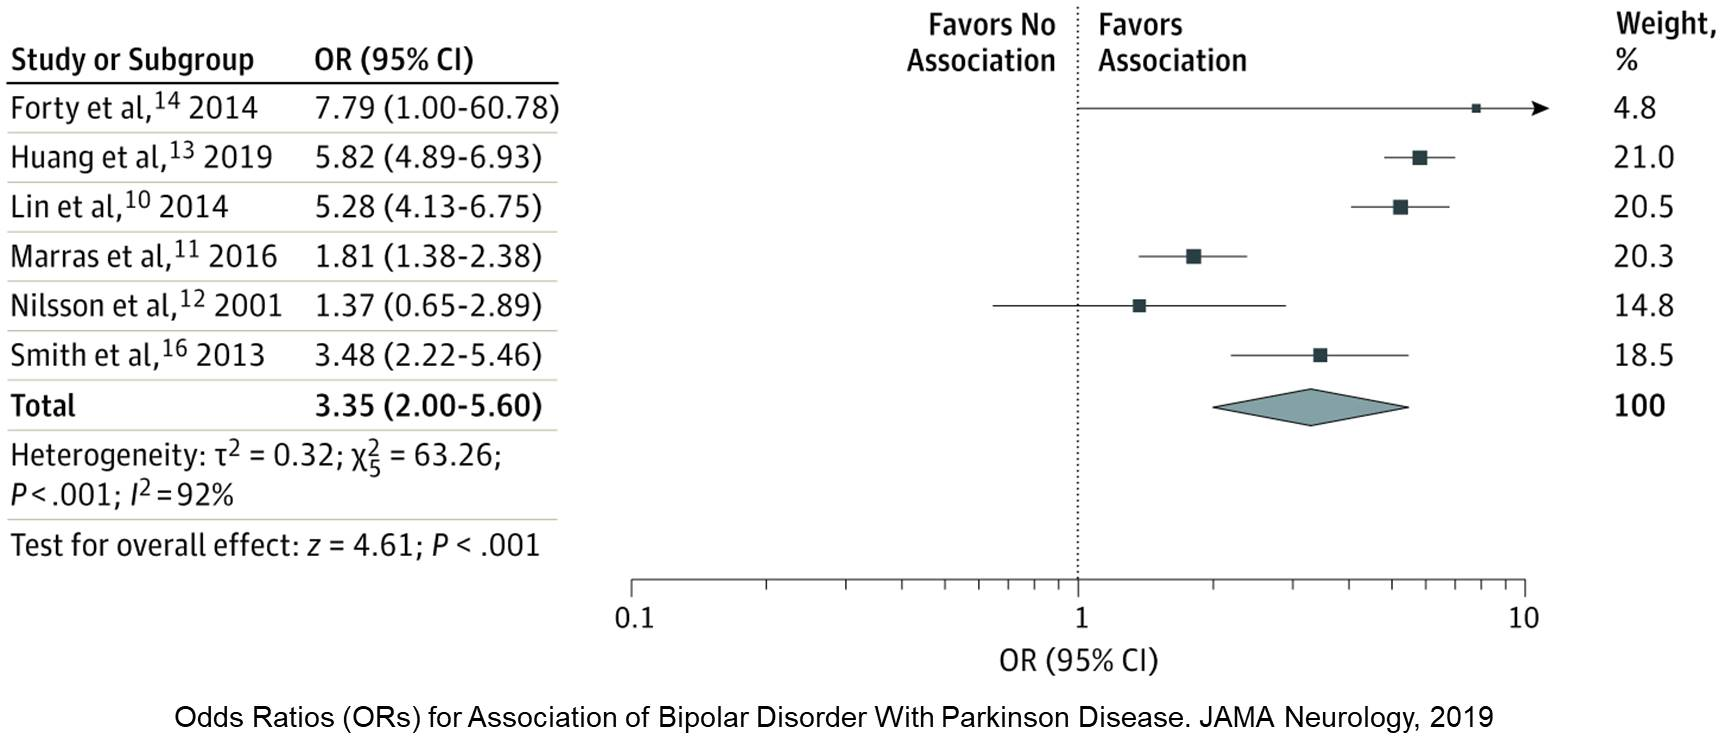 Is bipolar disorder associated with increased risk of Parkinson's disease?